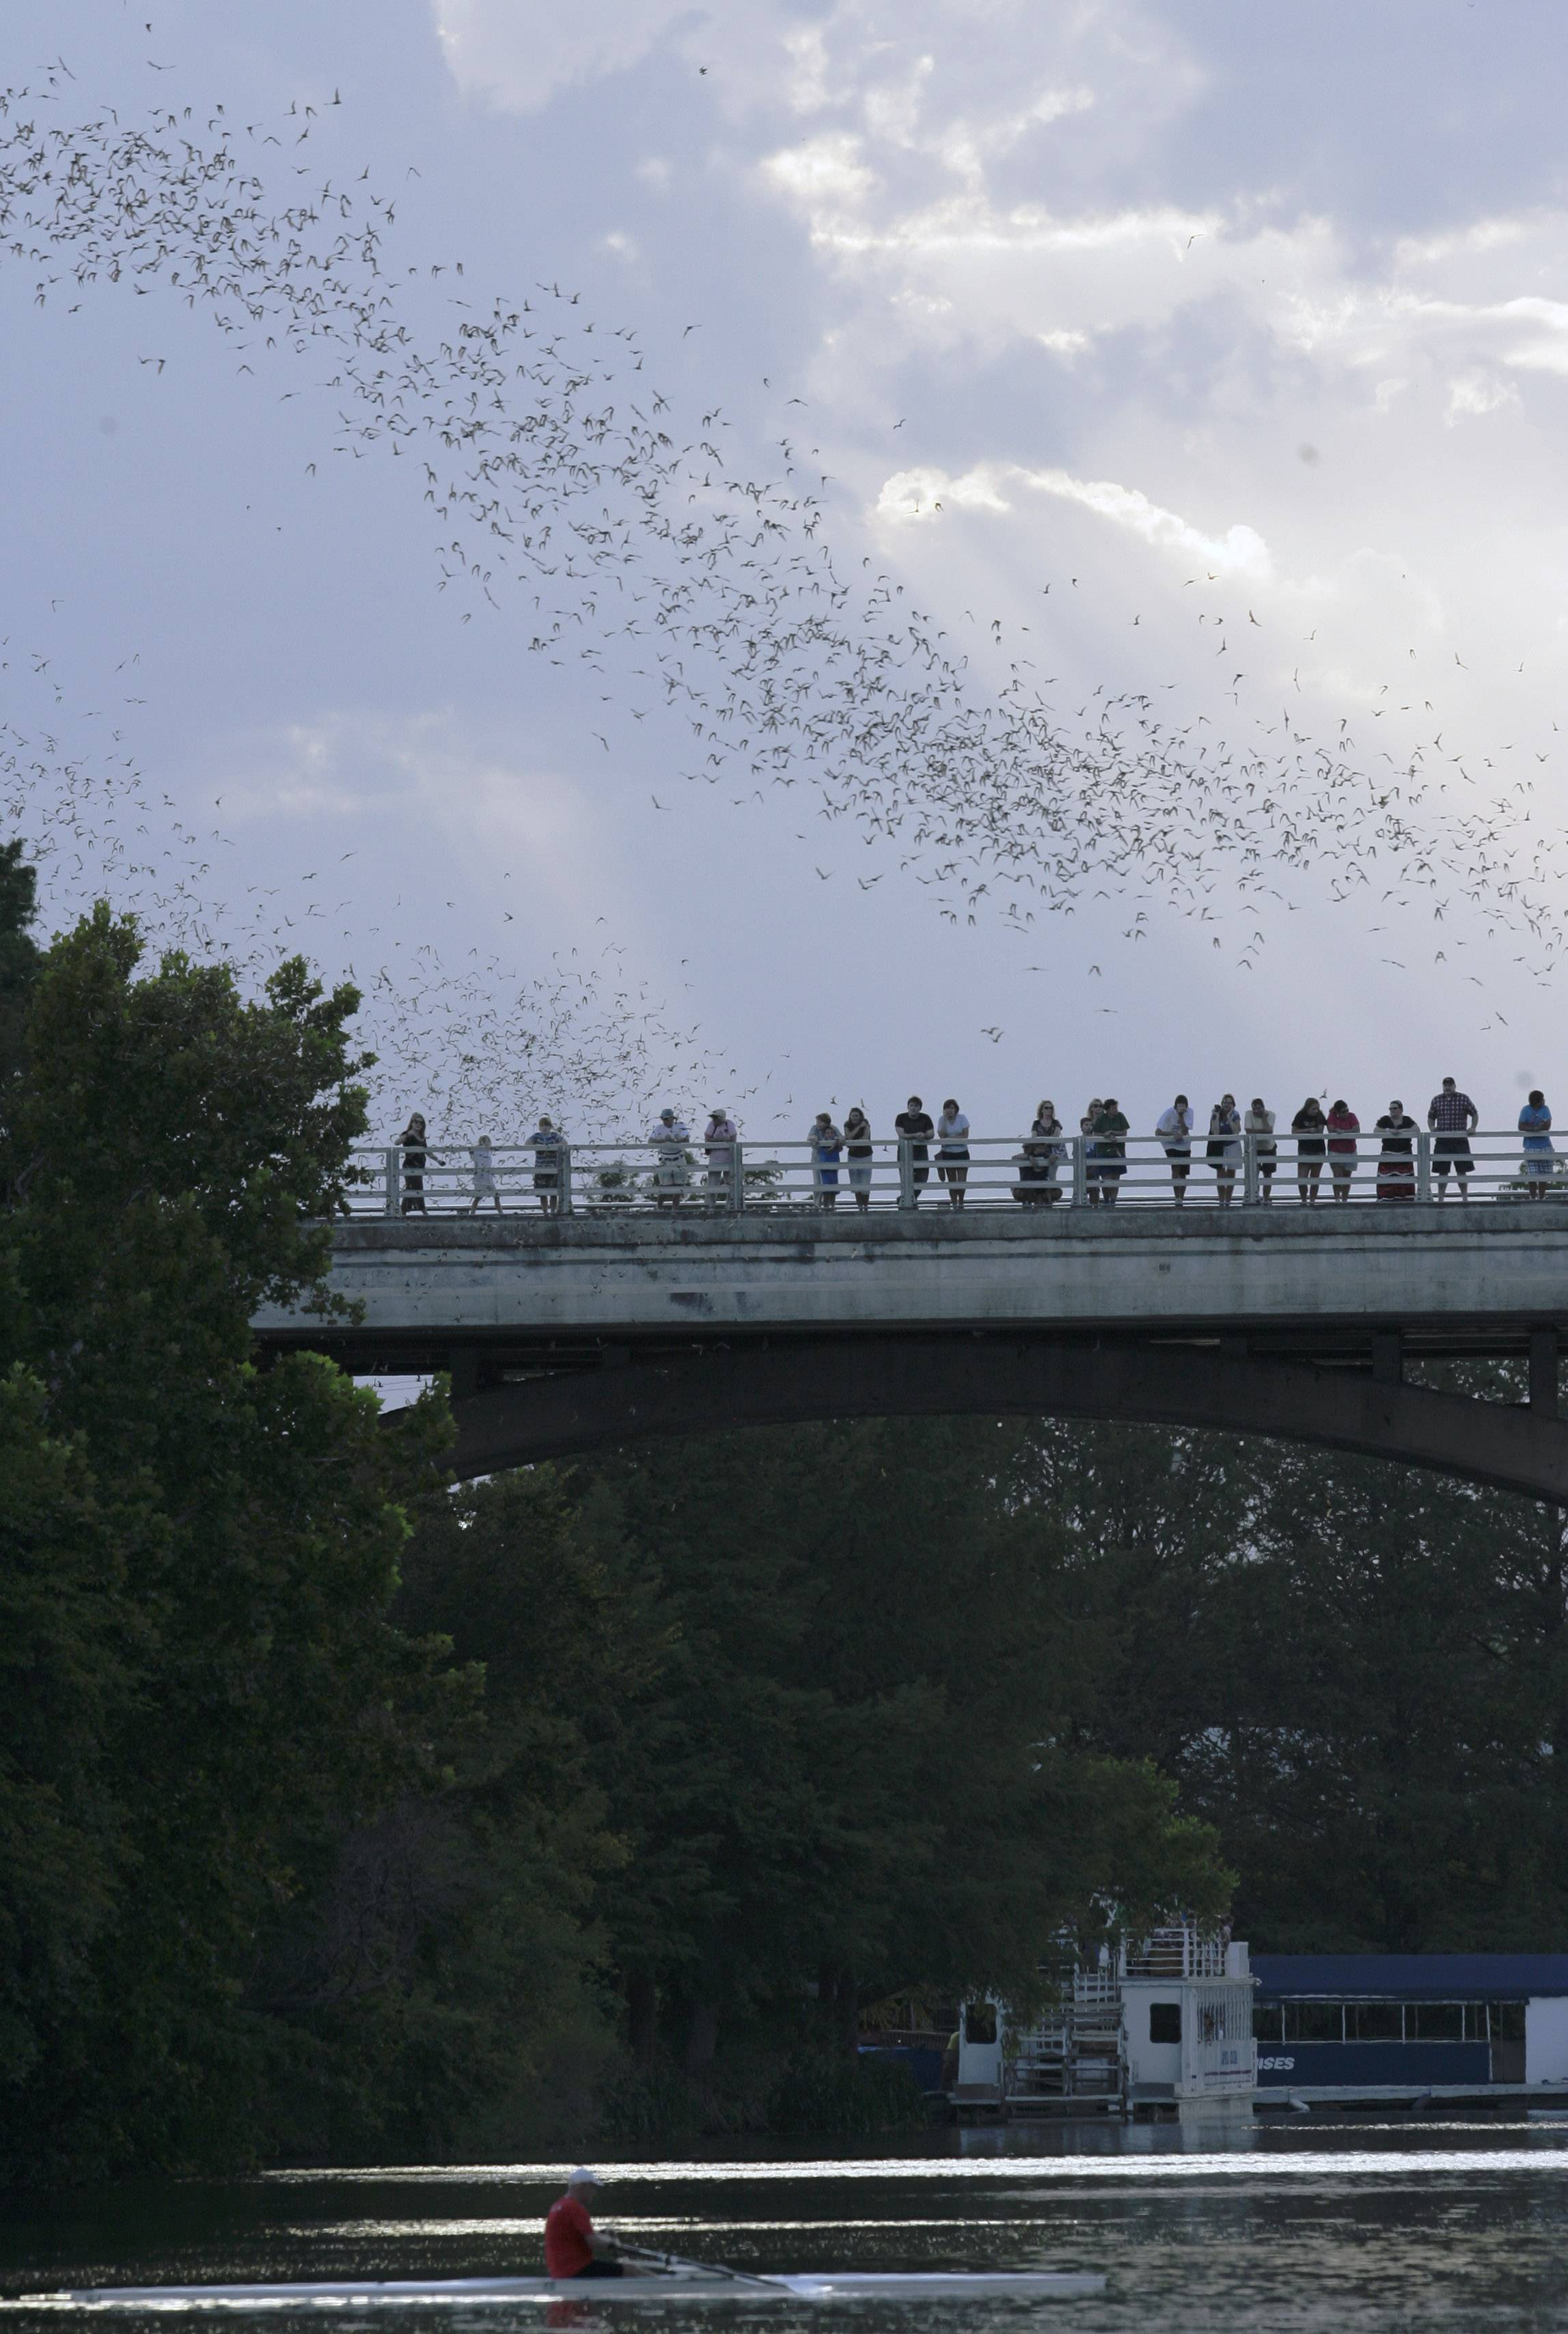 Spectators stop and watch as some of the more than 1.5 million bats emerge from the Congress Avenue bridge in Austin, Texas.